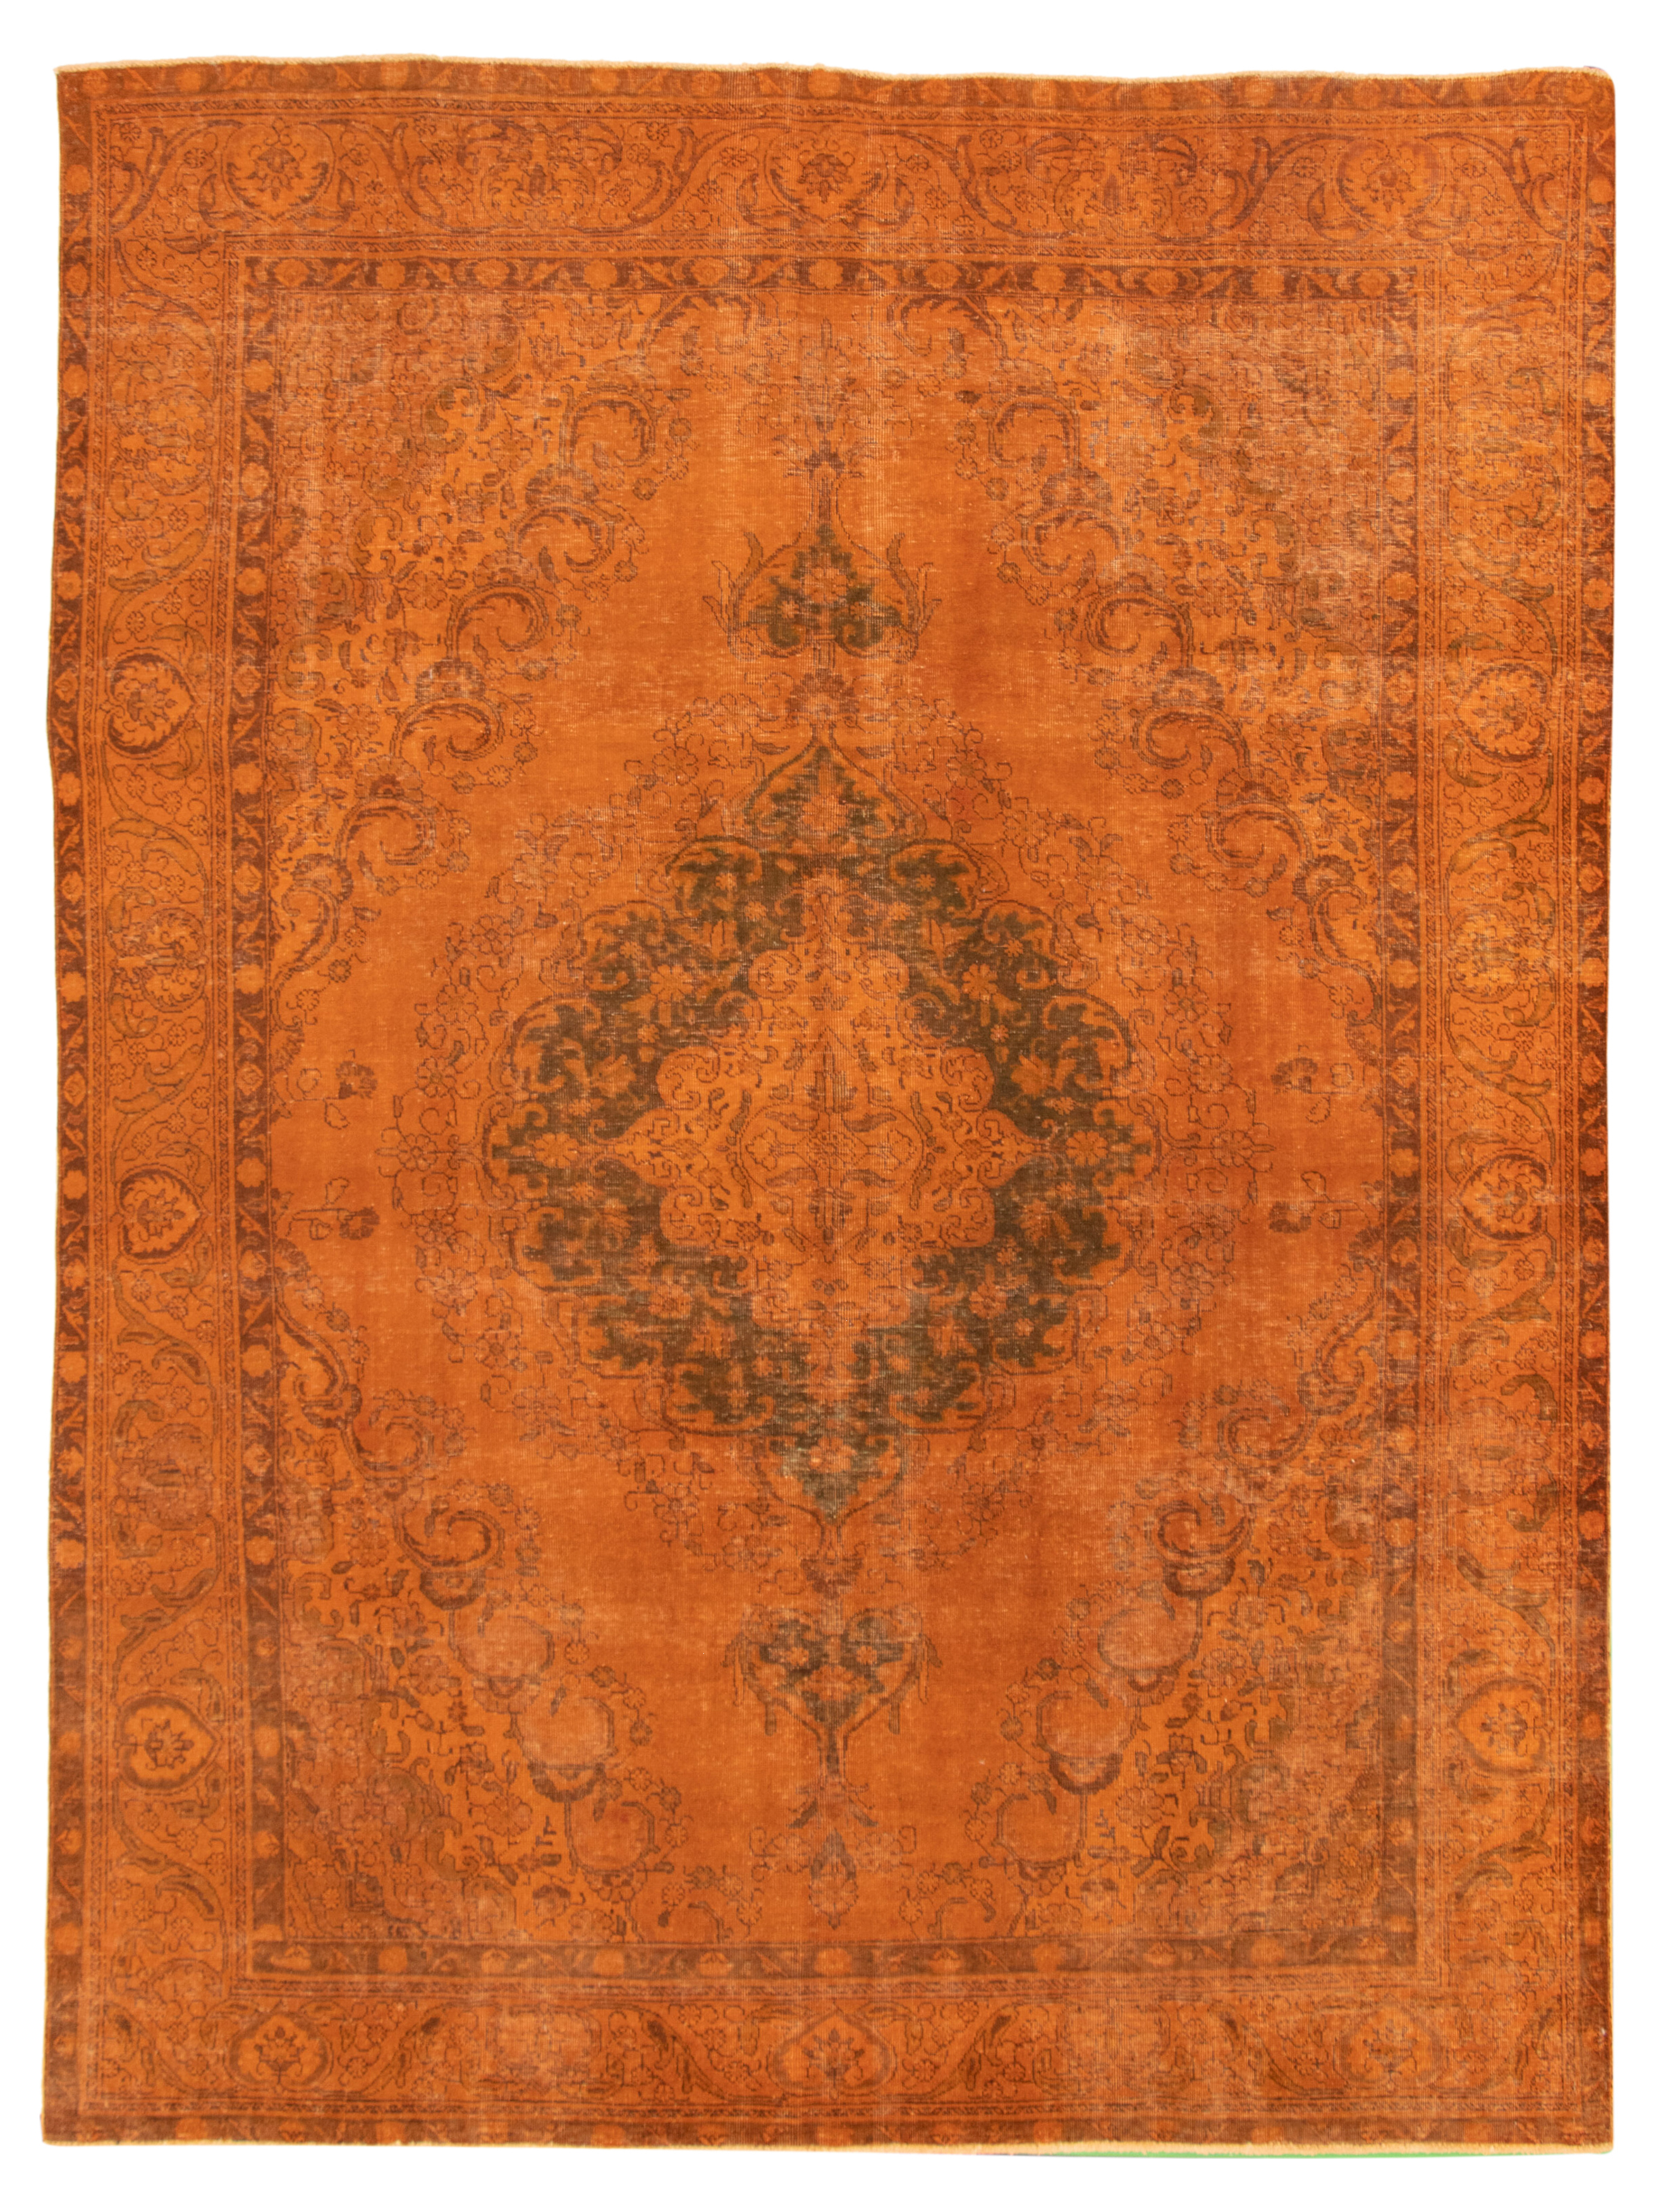 """Hand-knotted Color Transition Orange Wool Rug 9'4"""" x 12'3"""" Size: 9'4"""" x 12'3"""""""